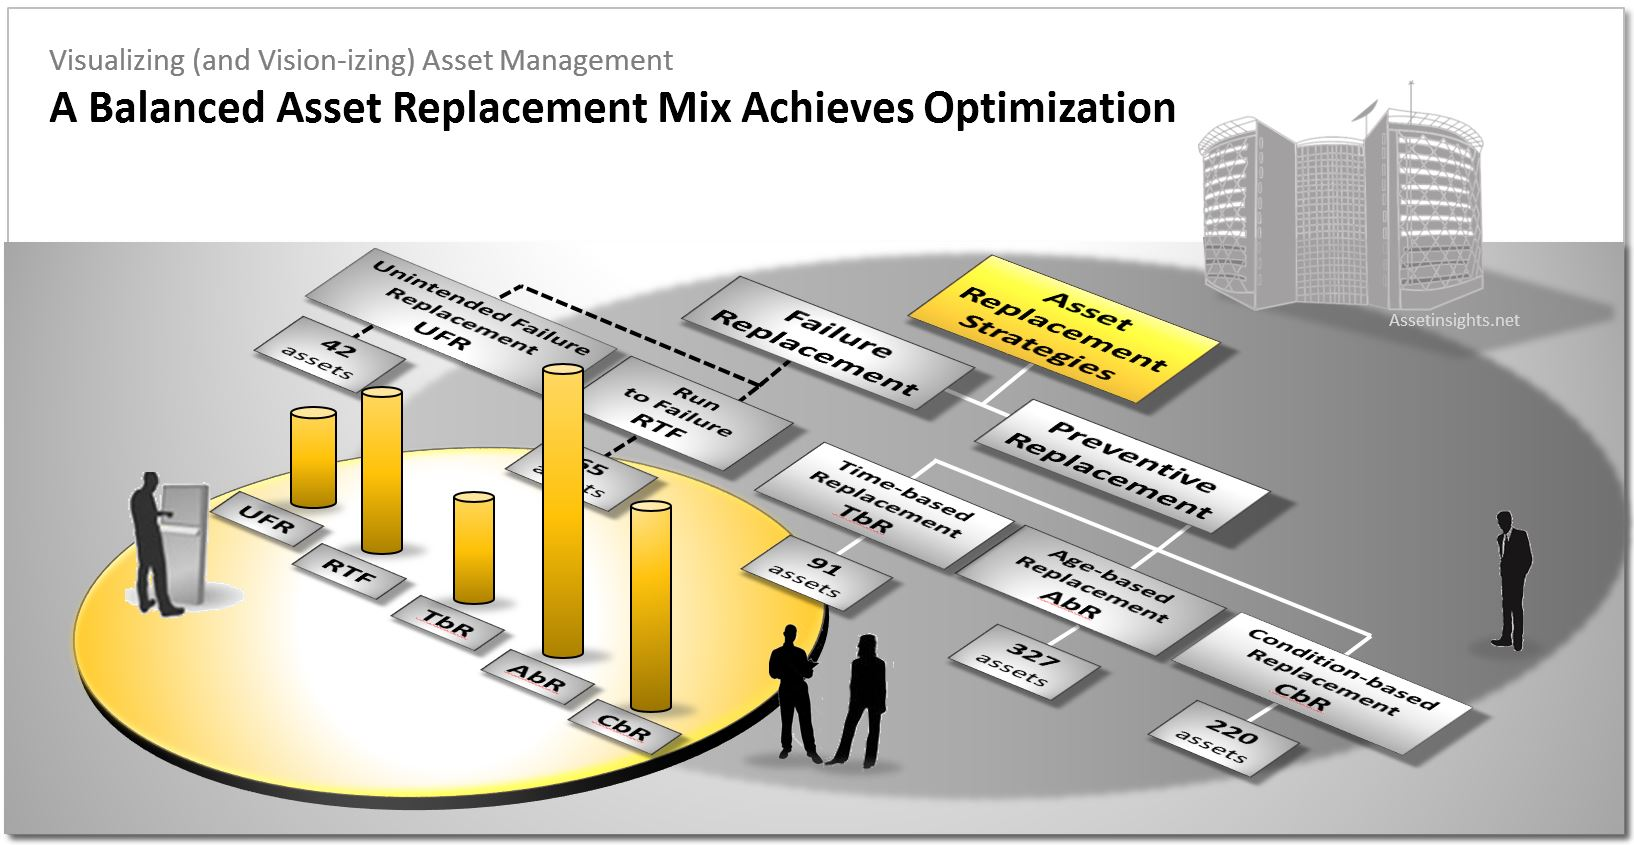 A balanced asset replacement mix helps the organization to achieve optimization in conformity with ISO 55001 principles